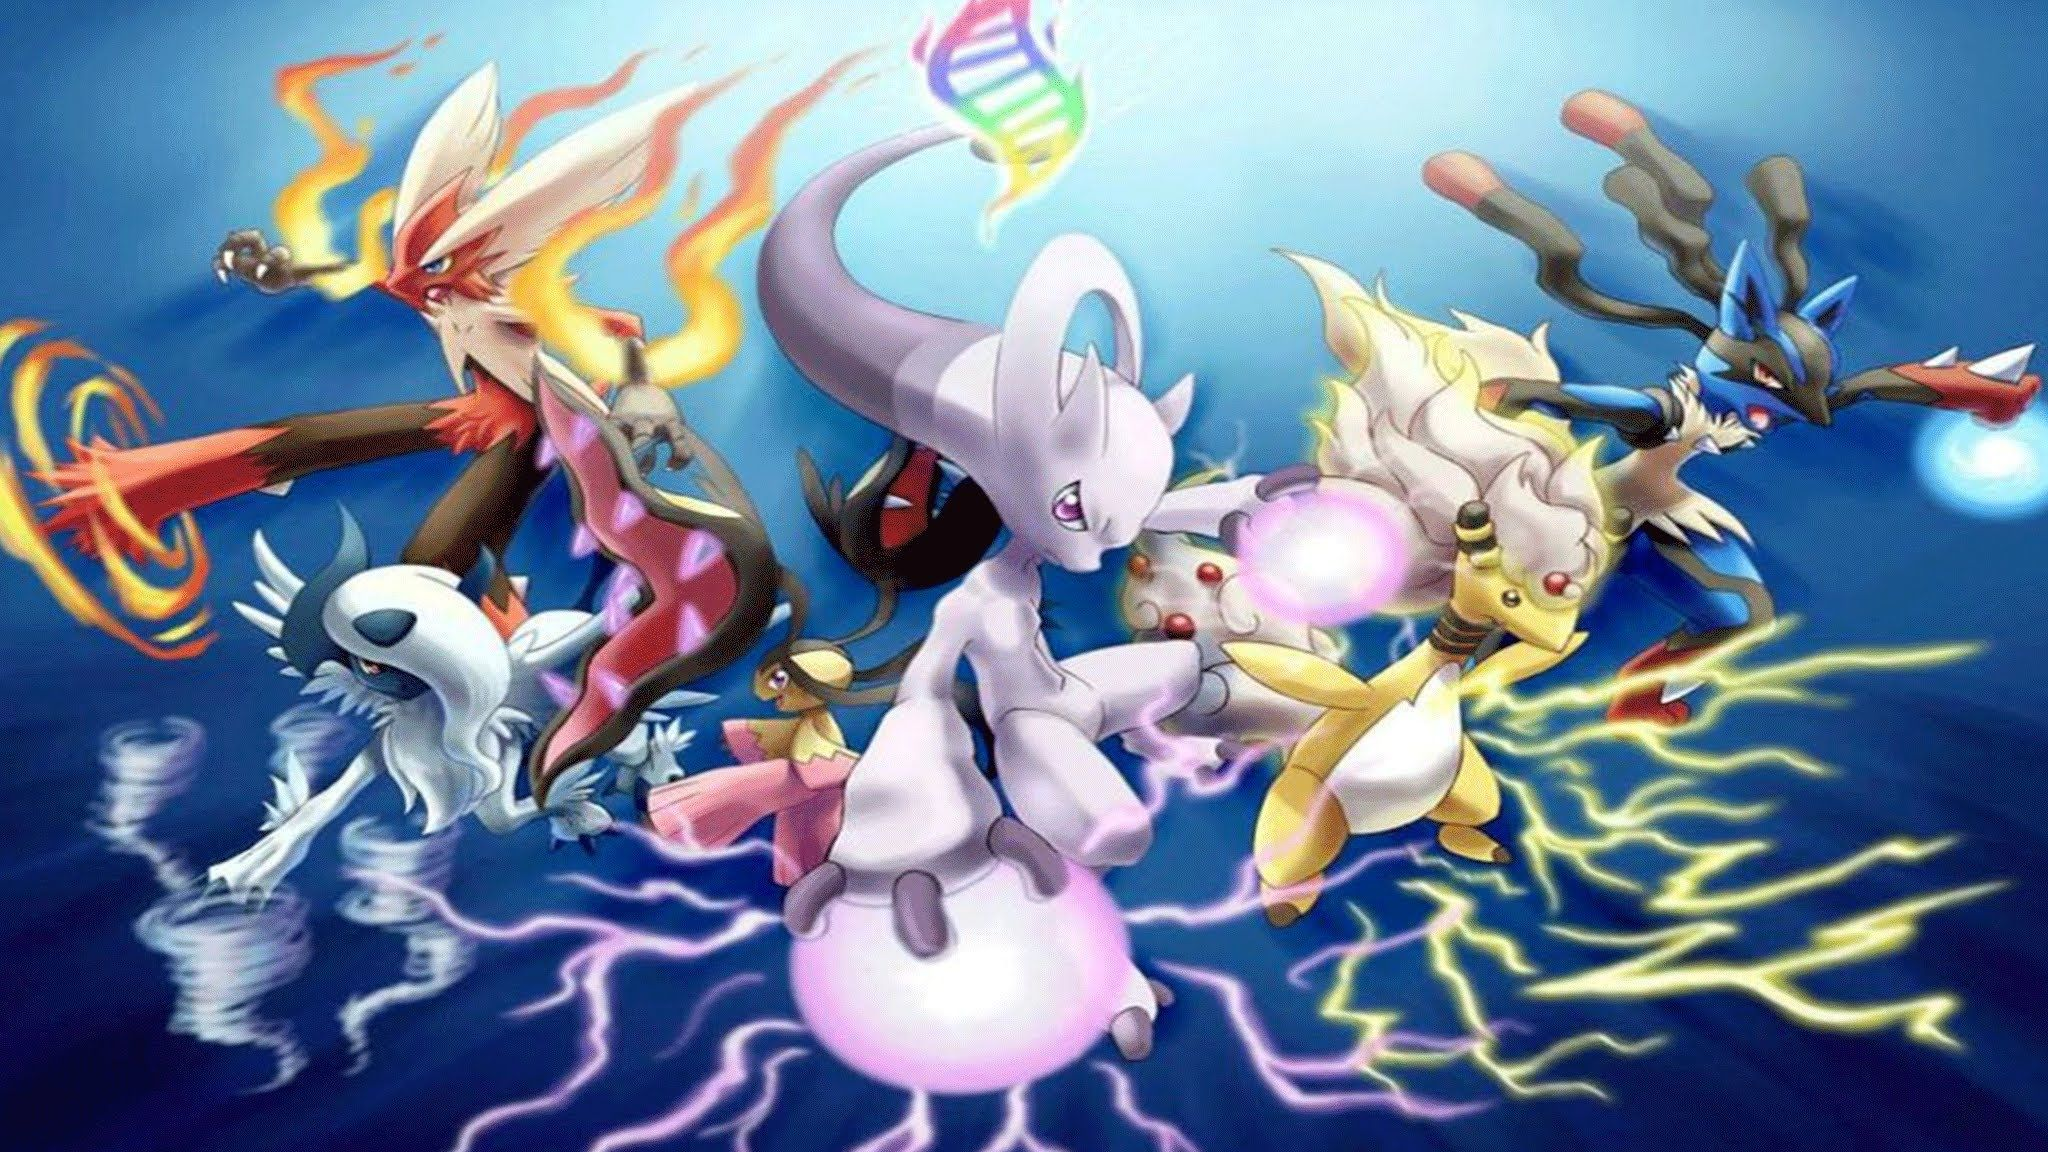 Wallpaper download pokemon - Pokemon Wallpapers Free Download 1600 1200 Free Download Pokemon Wallpapers 53 Wallpapers